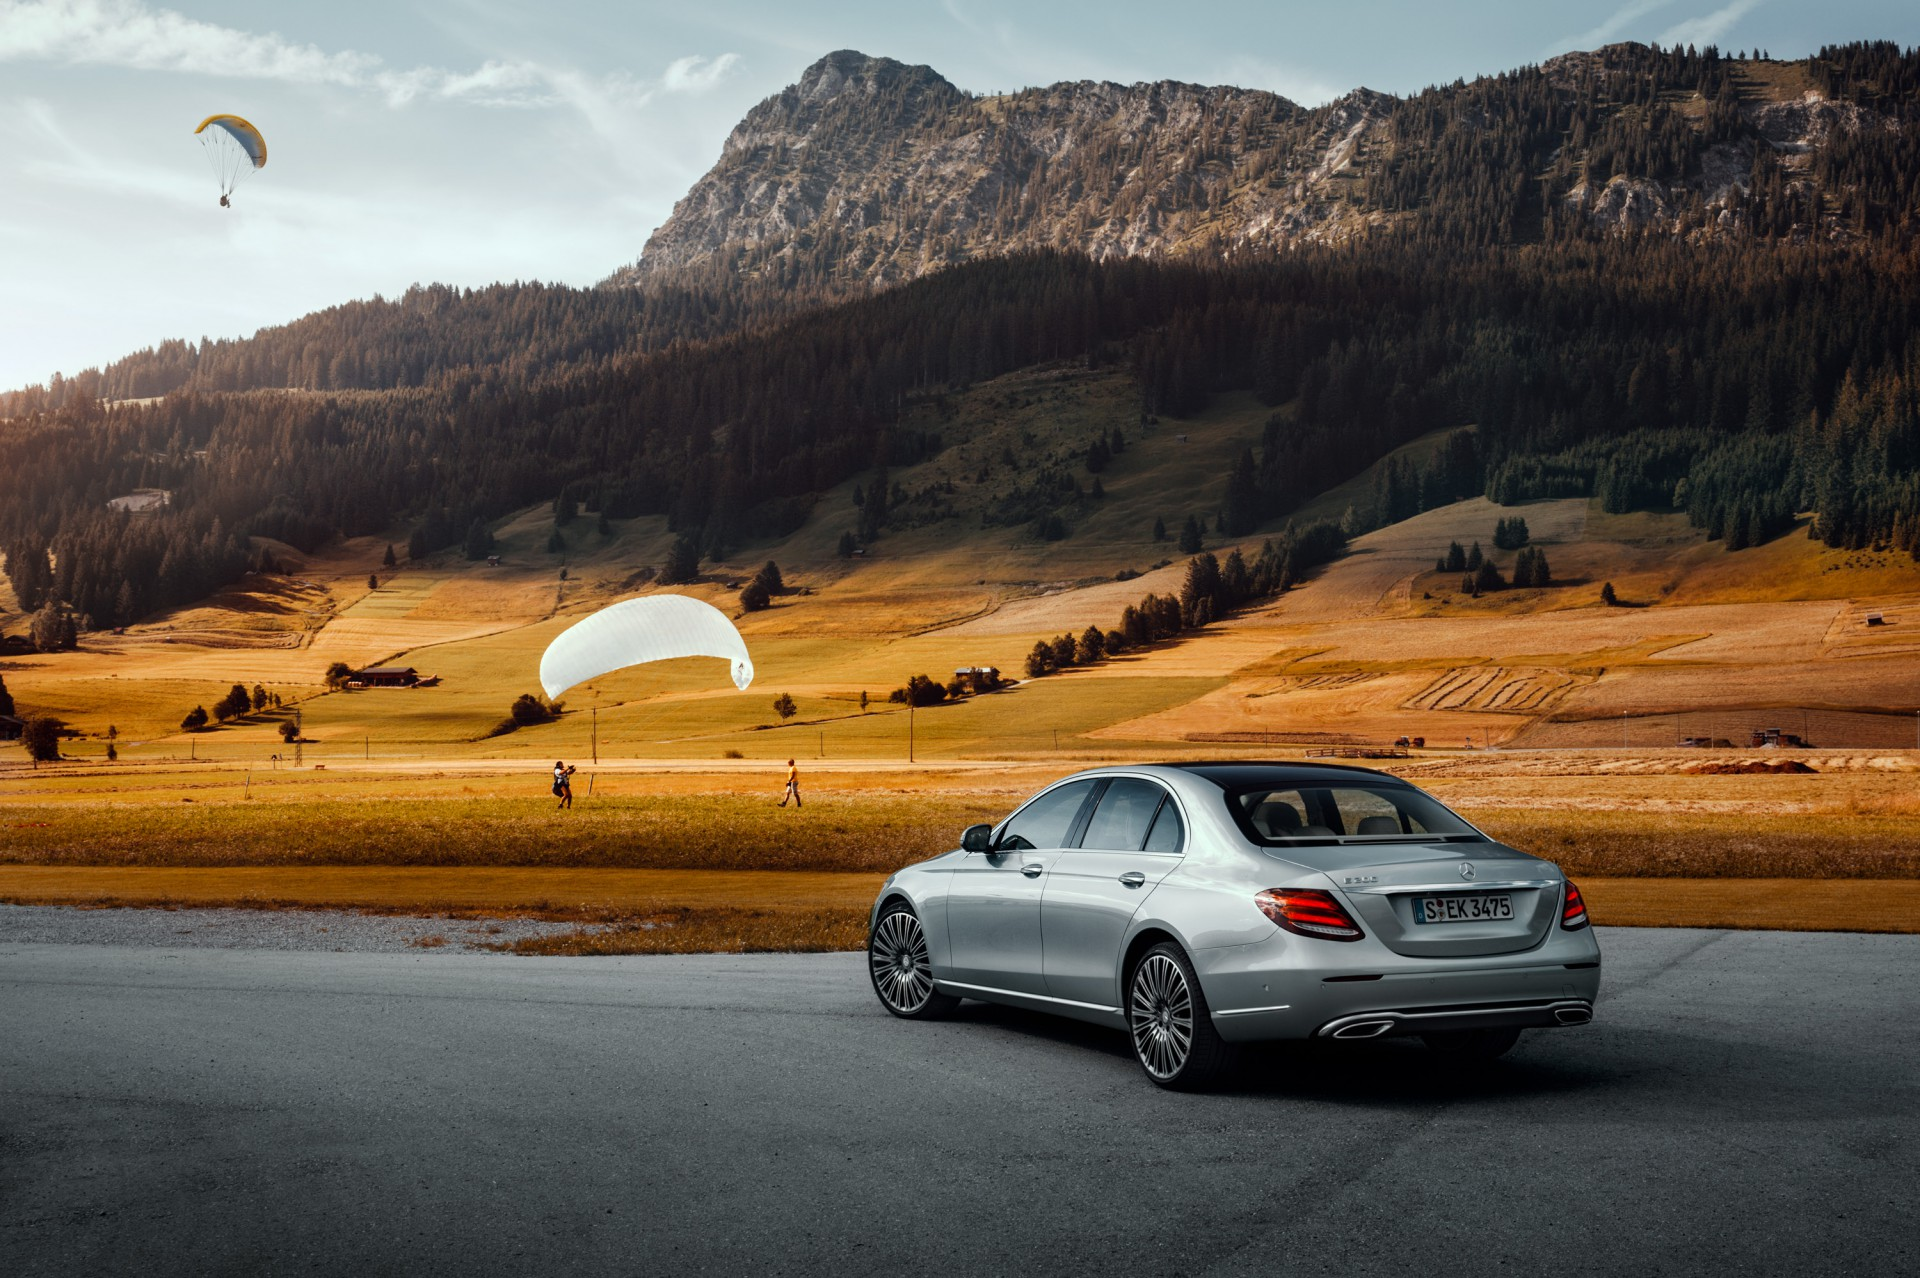 bernstein photodesign Mercedes-Benz E-Class